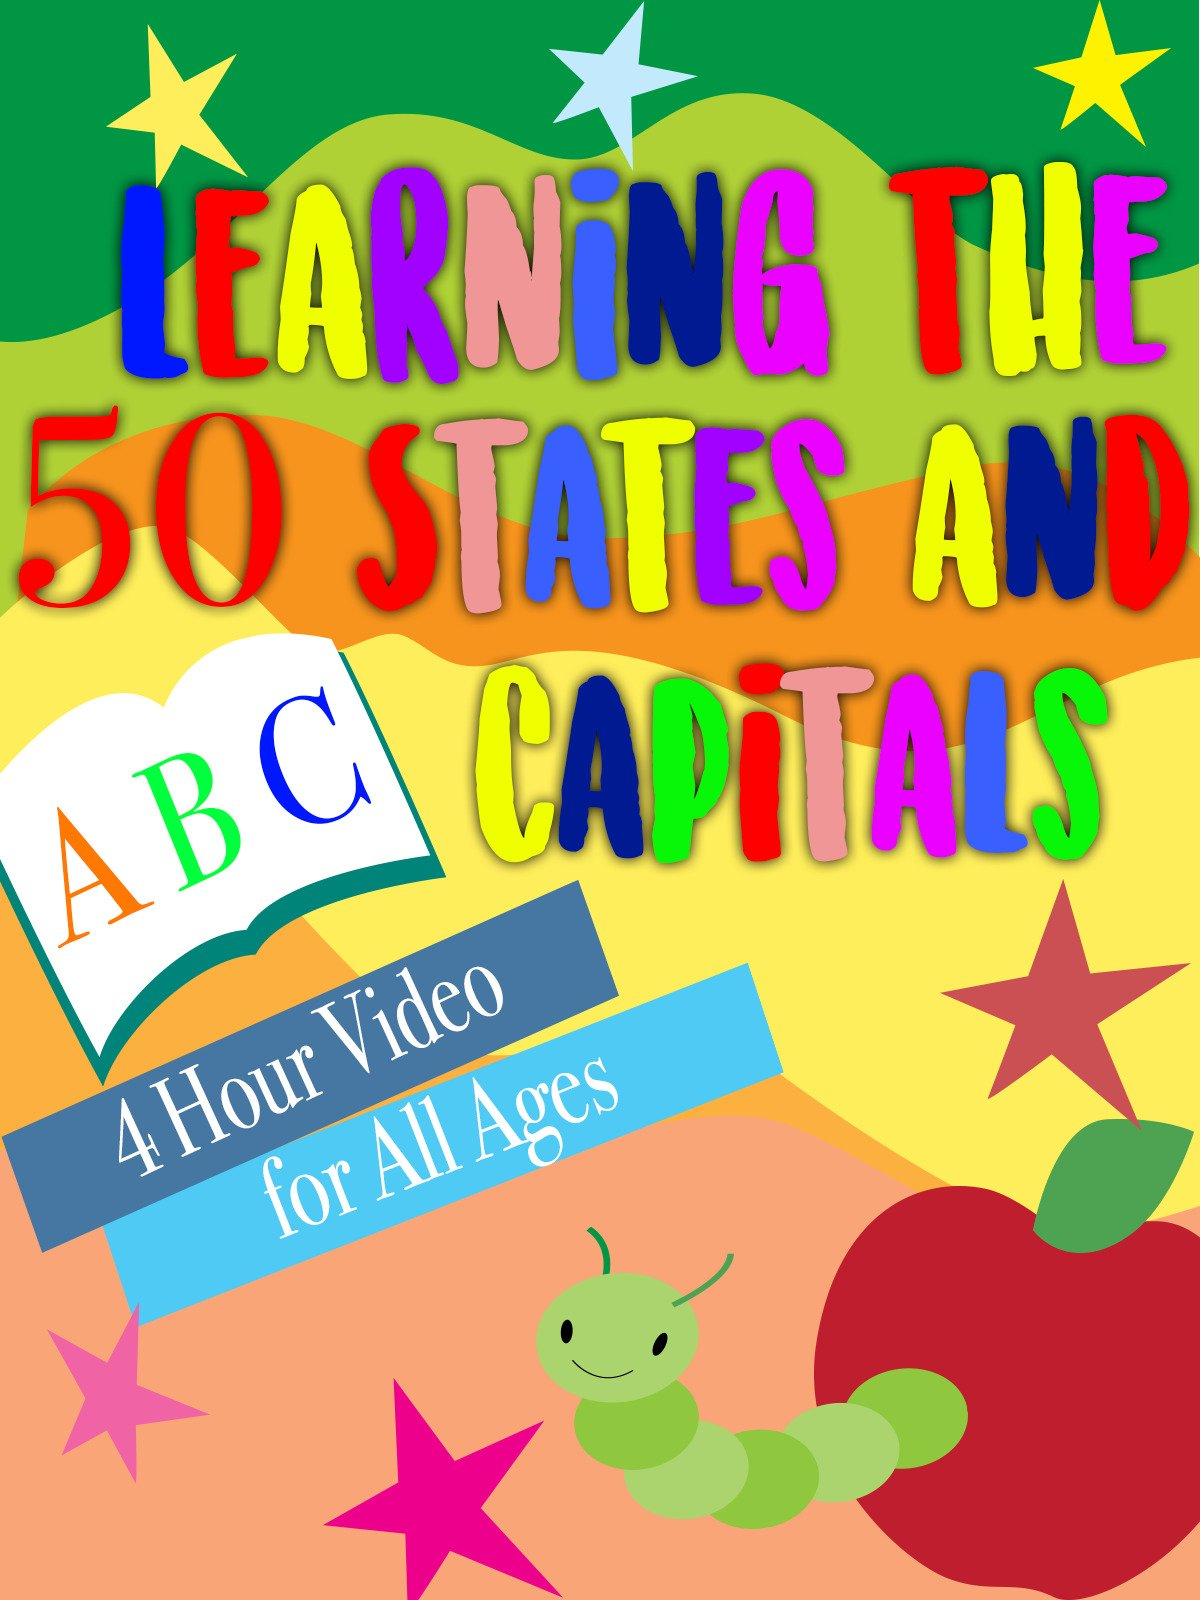 Learning the 50 States and Capitals 4 Hour Video for All Ages